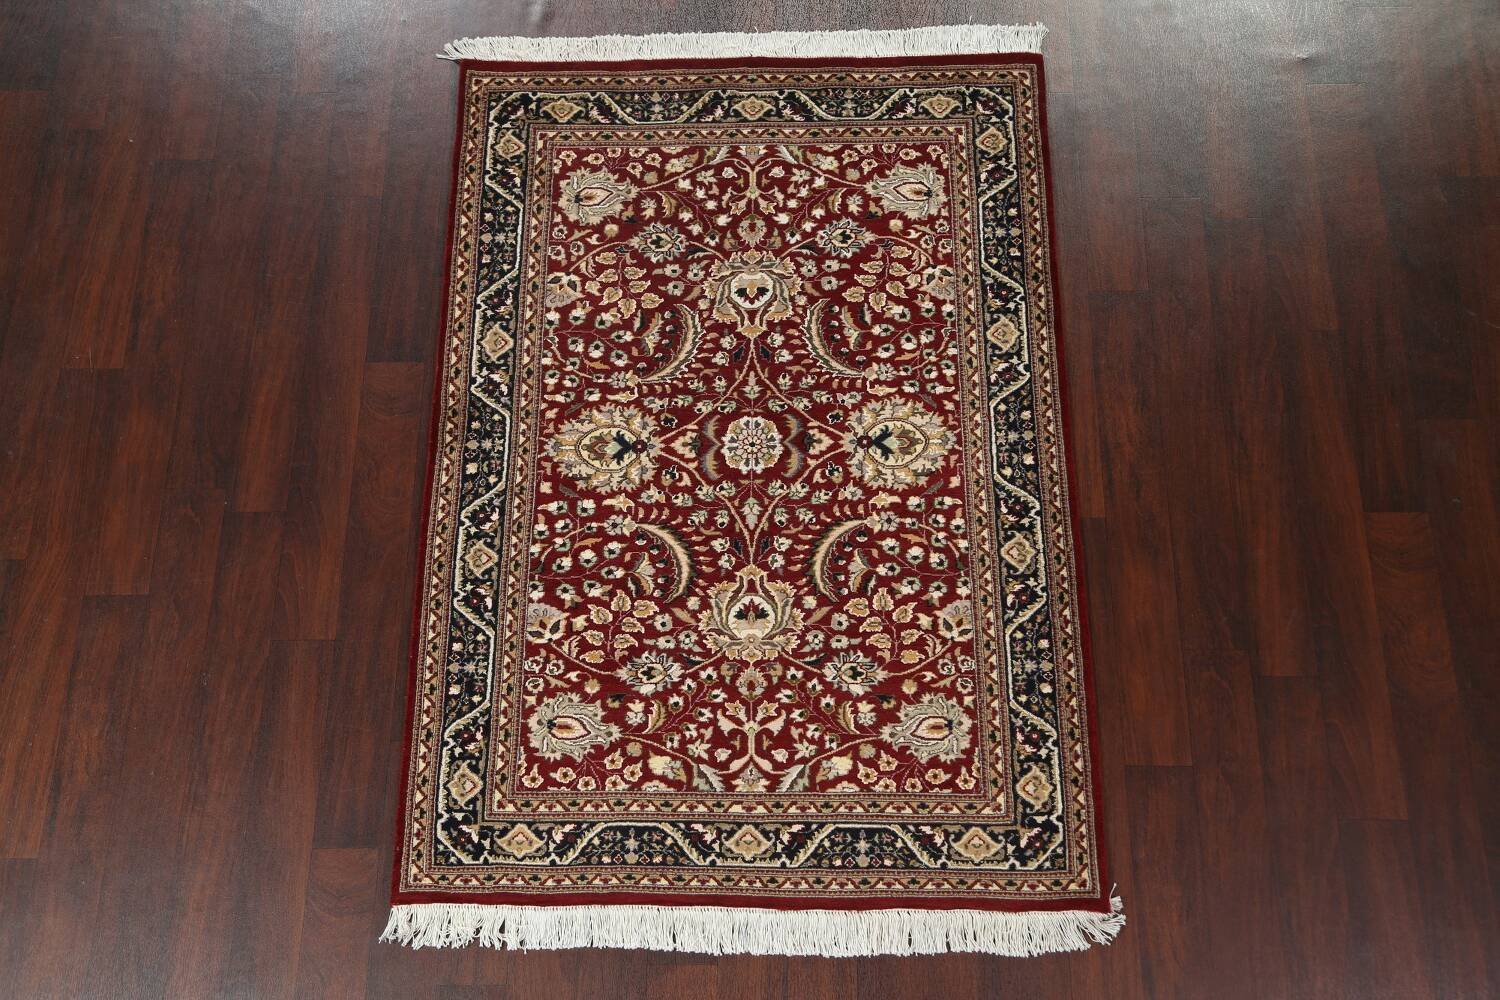 Vegetable Dye Aubusson Hand-Knotted Area Rug 4x6 image 13